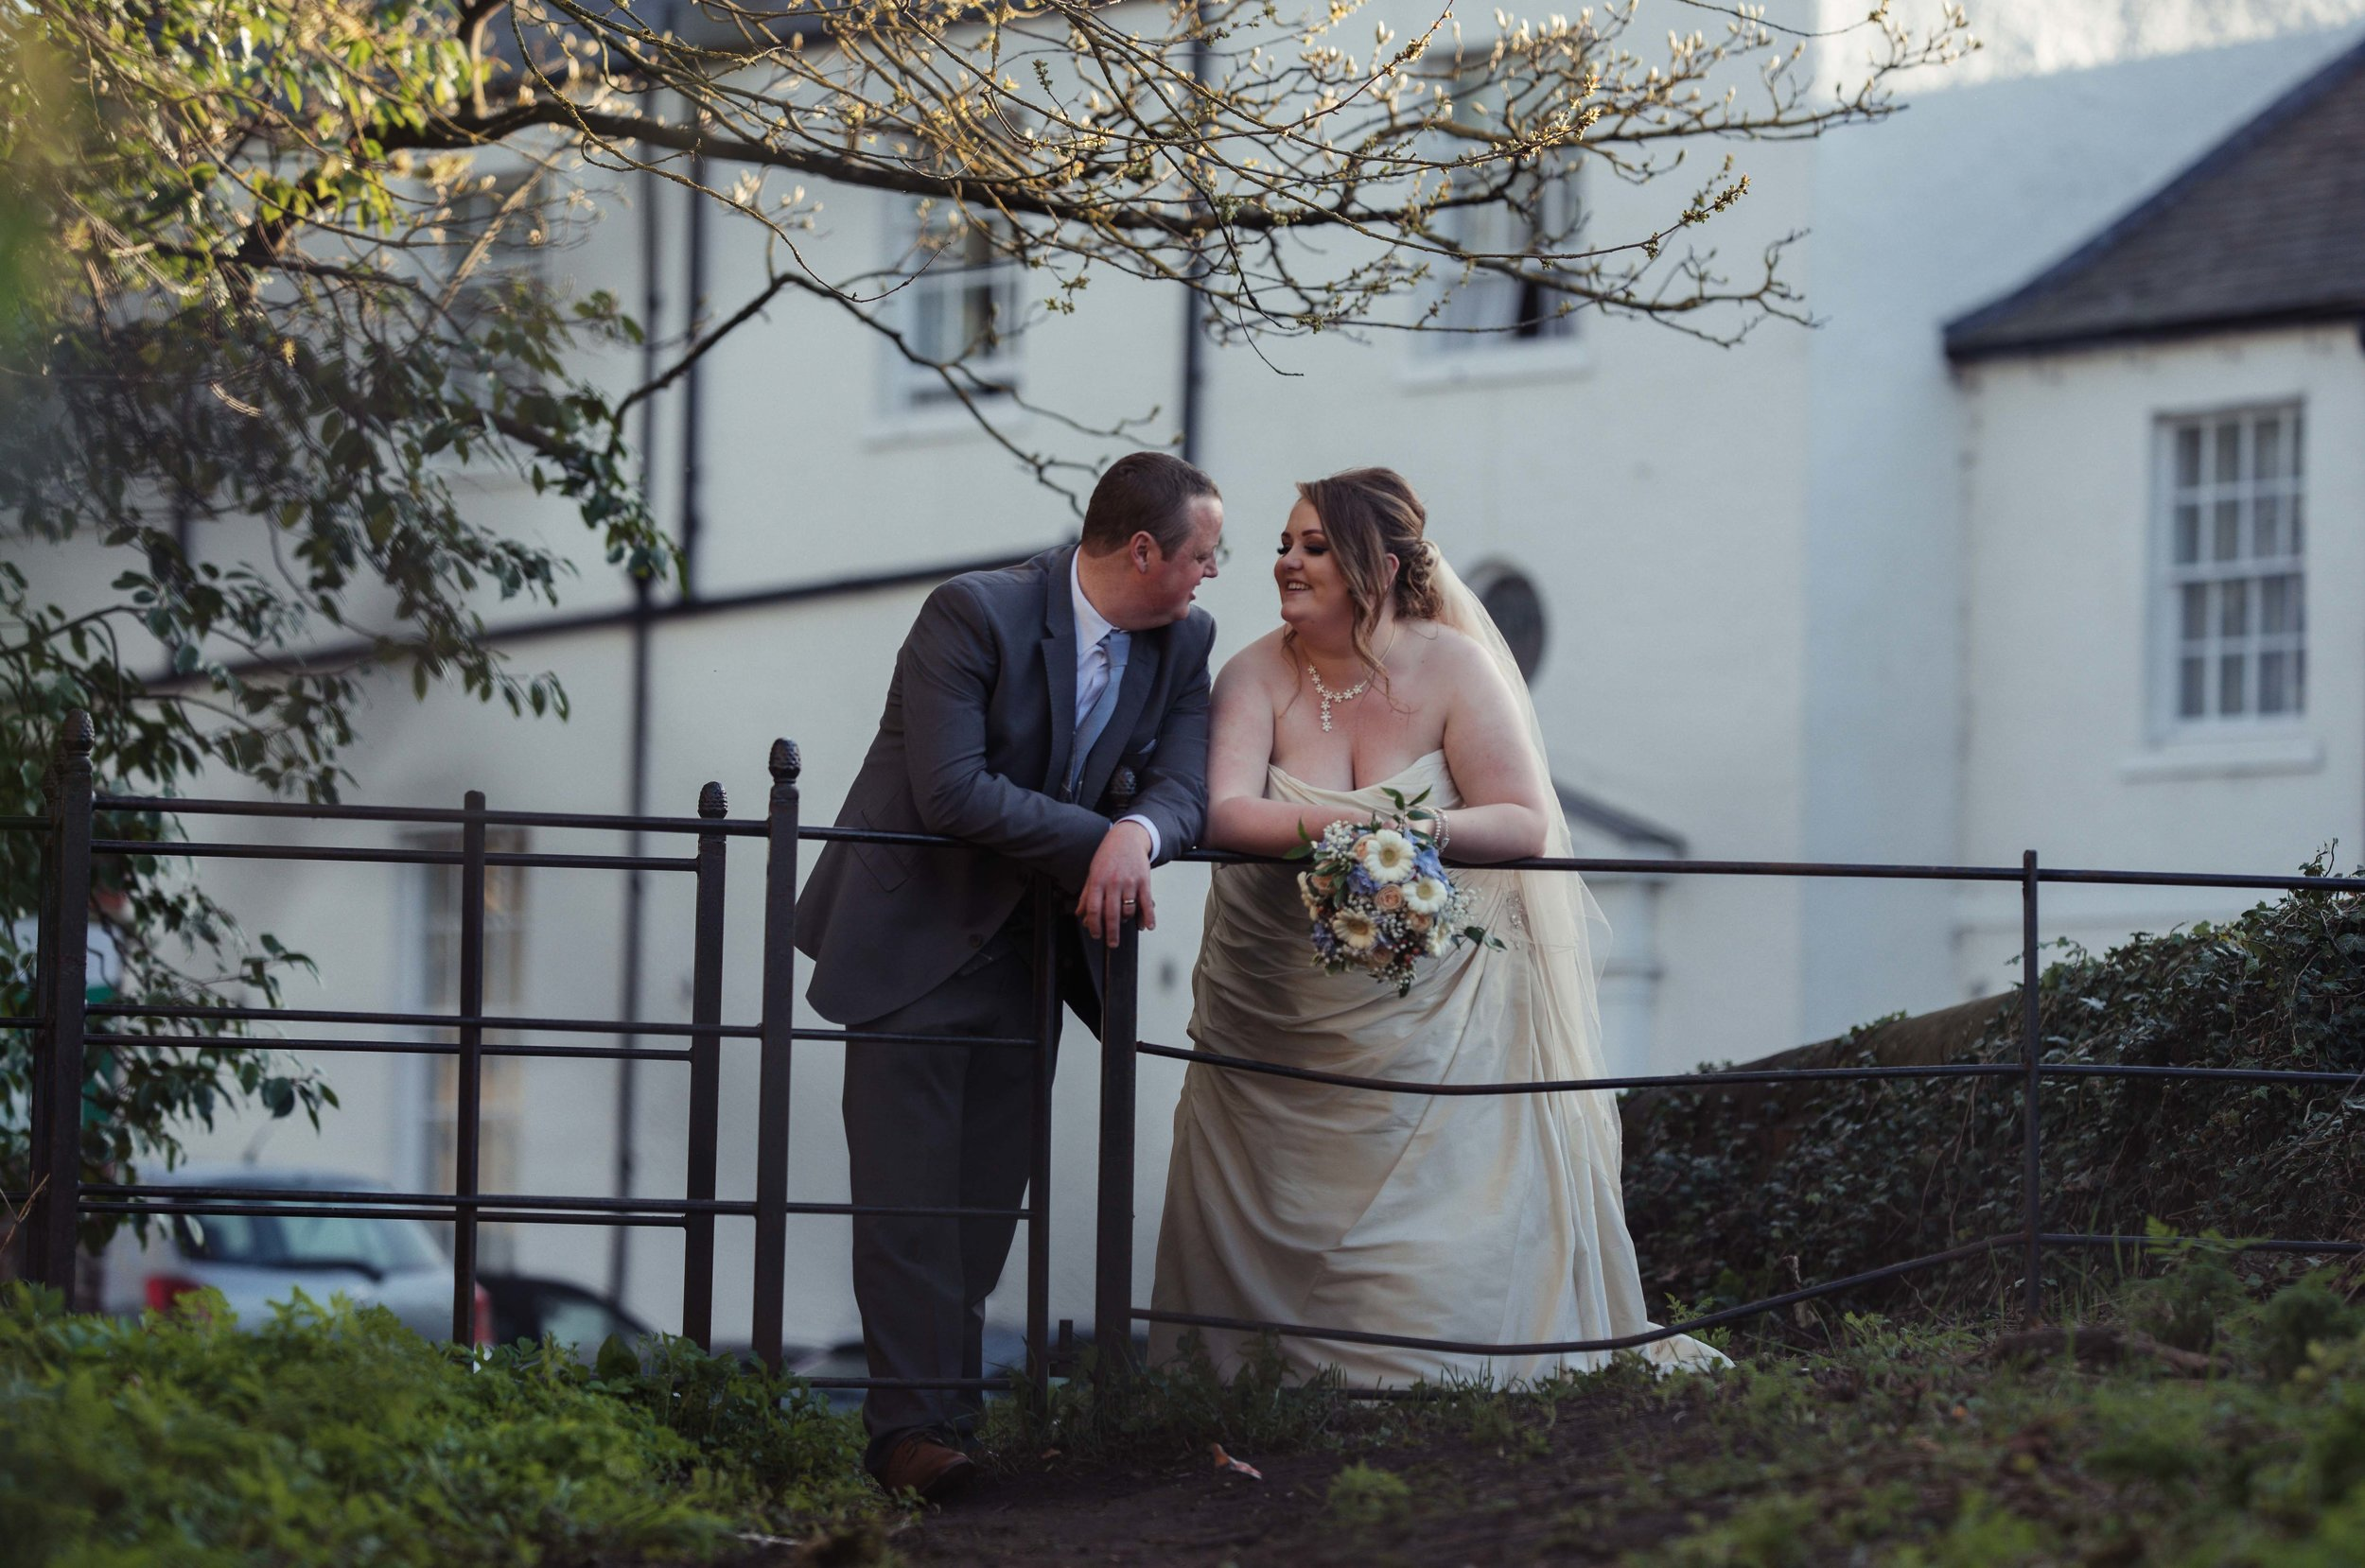 The bride and groom stand and chat to each other, with their wedding venue in view in the background